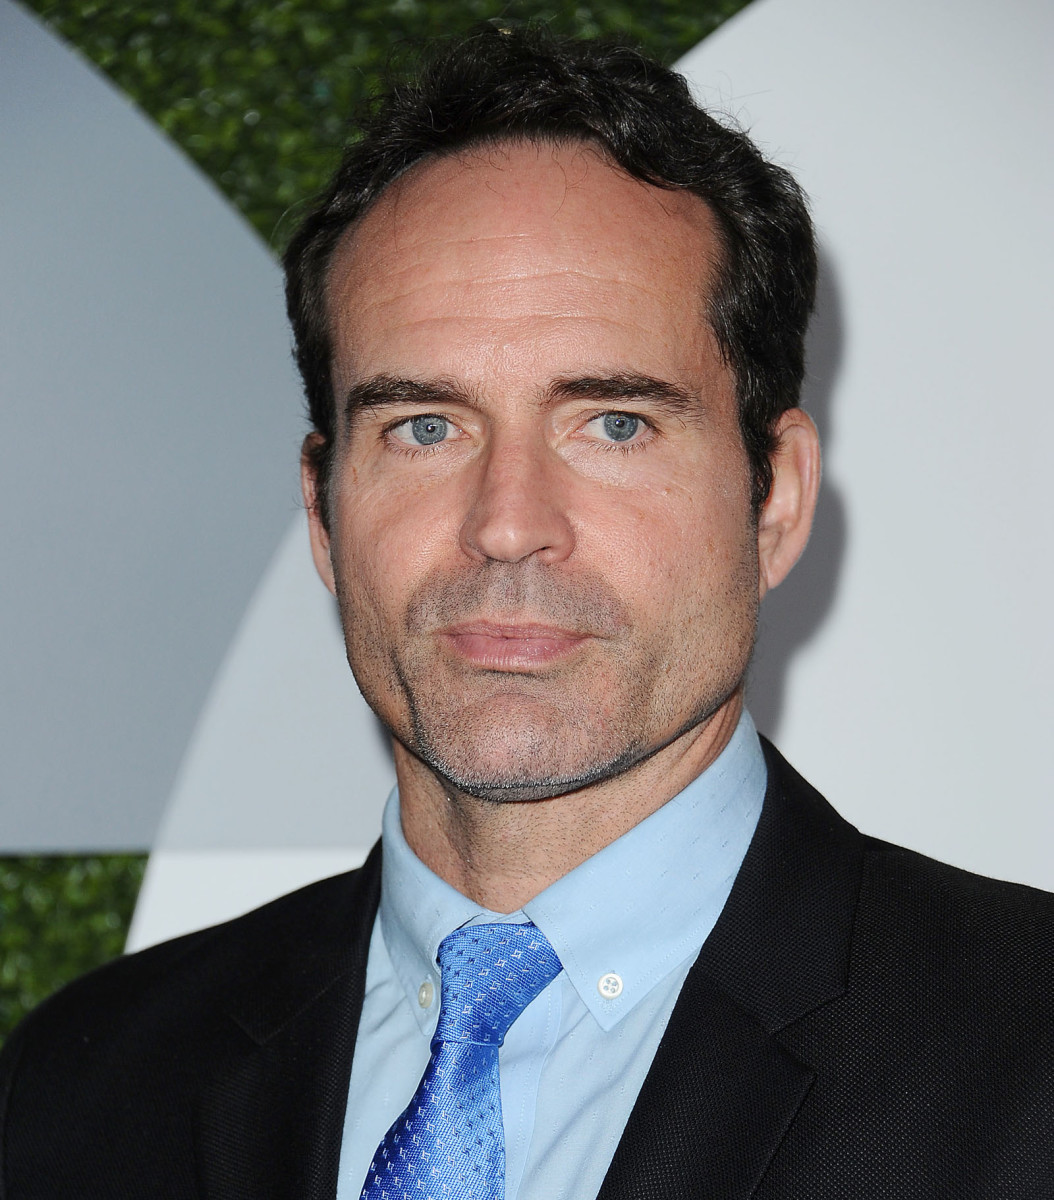 The Lost Boys Cast: Where Are They Now? Jason Patric